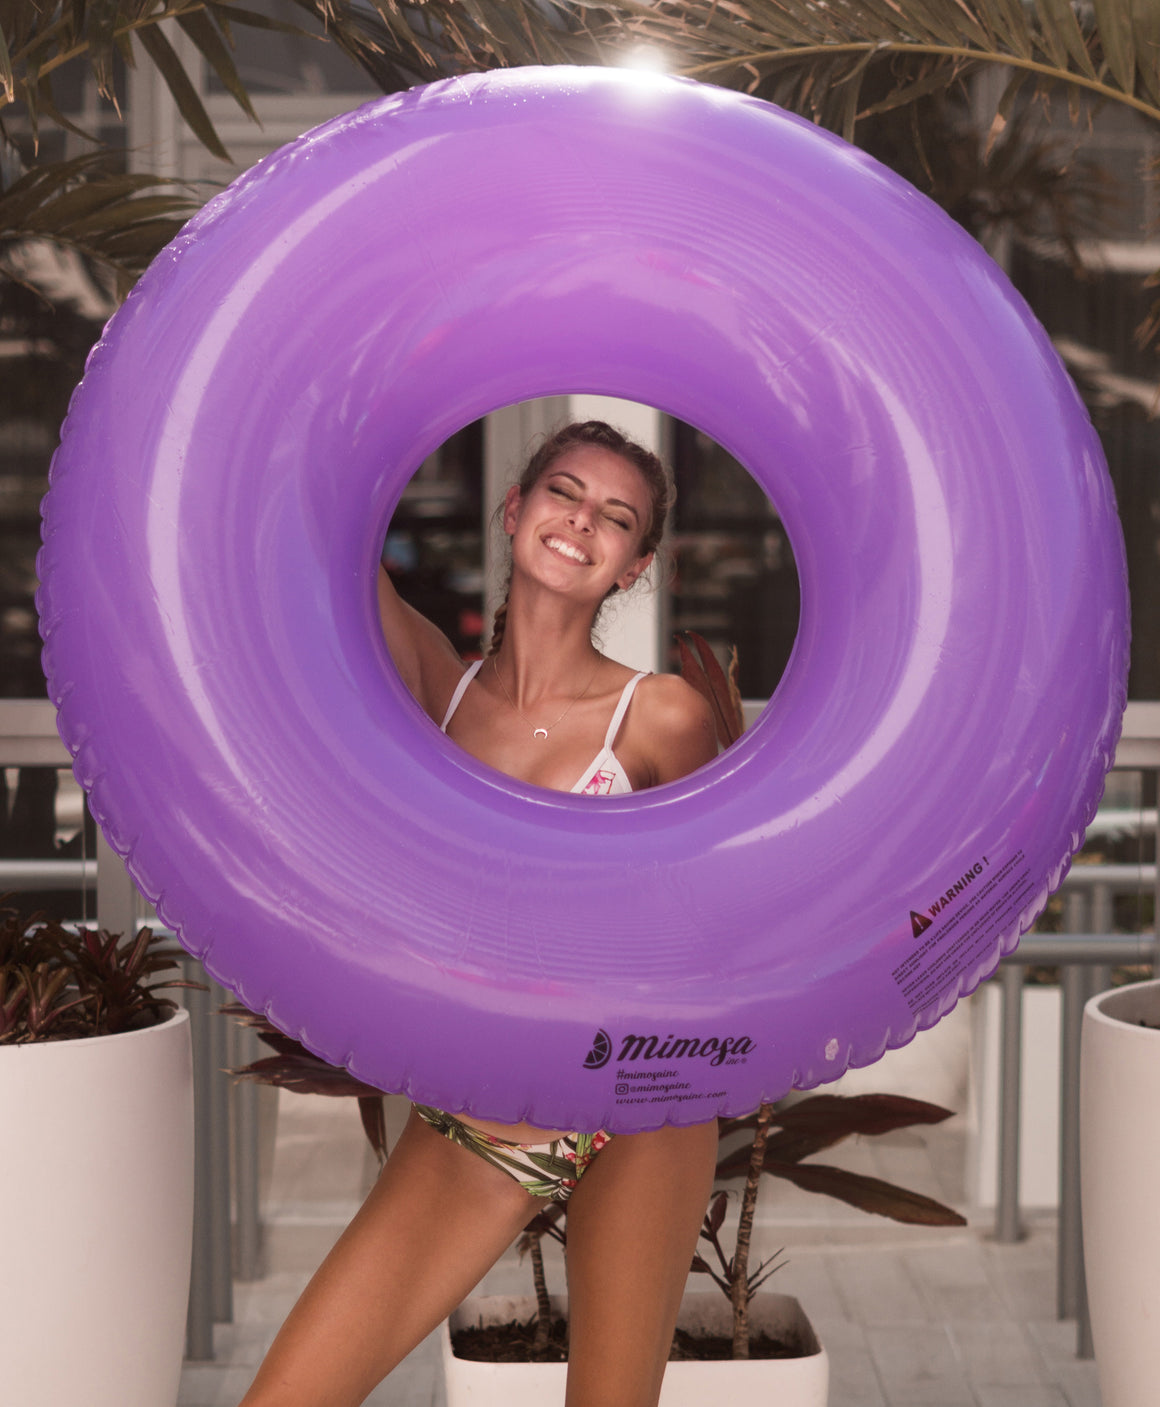 Purple solid color round tube pool float by Mimosa Inc